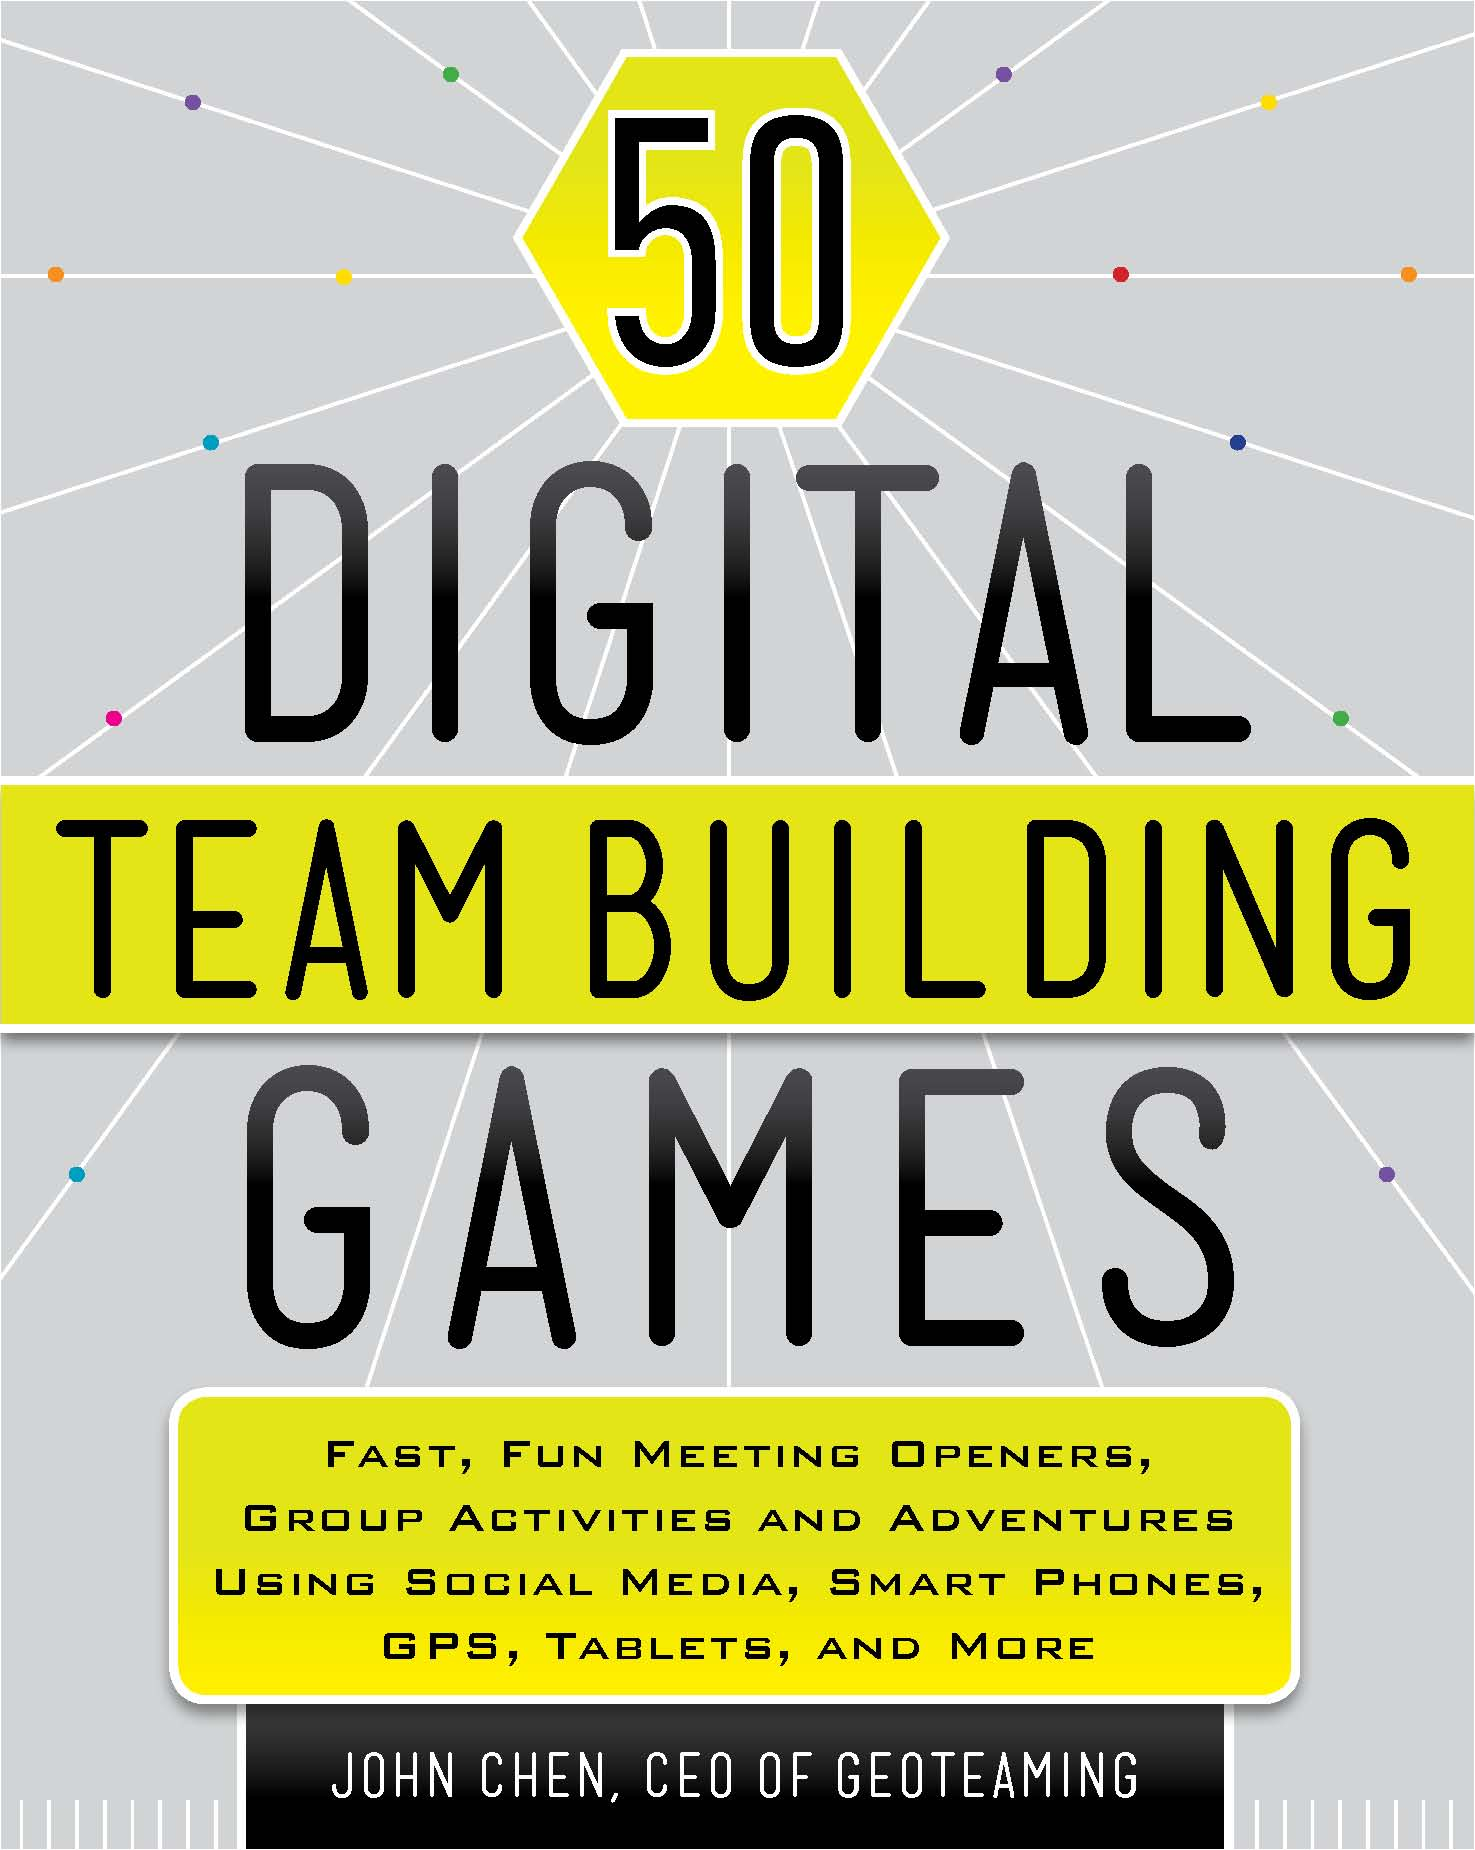 50 Digital Team Building Games by John Chen, CEO of Geoteaming